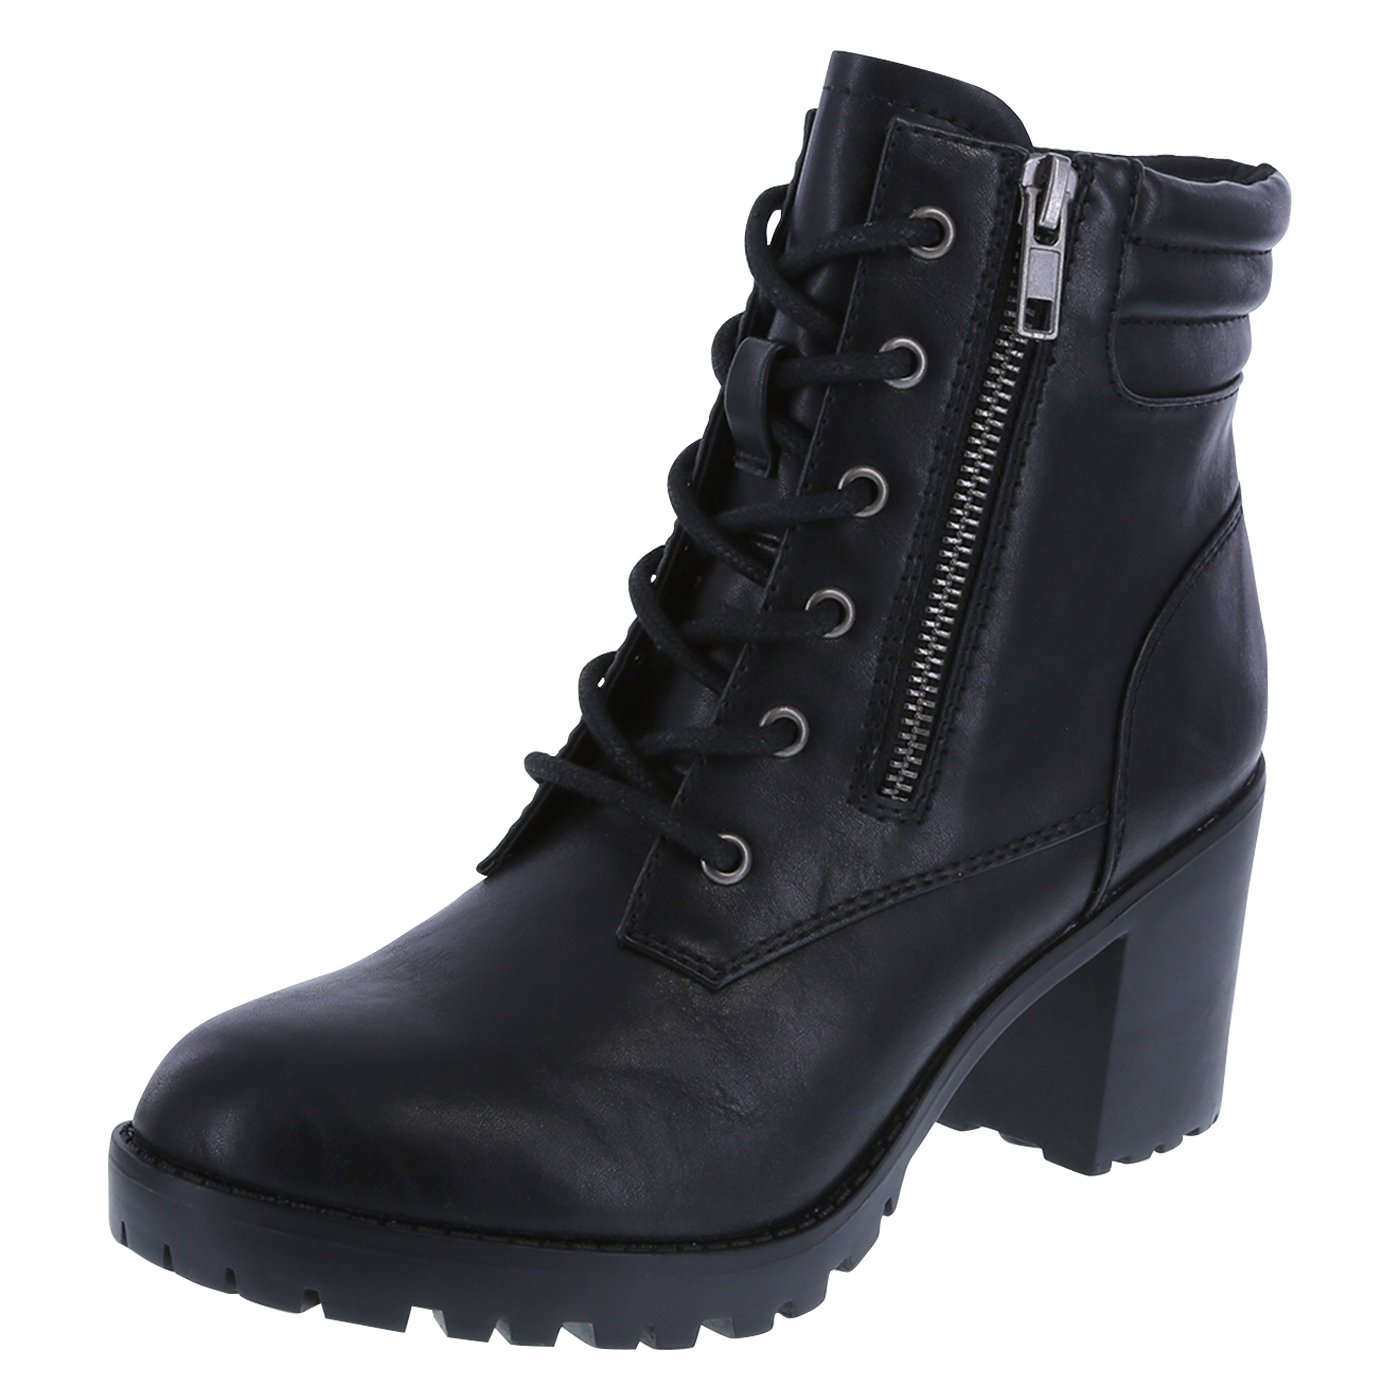 Lace Up Boots For Women XVlRPmx1